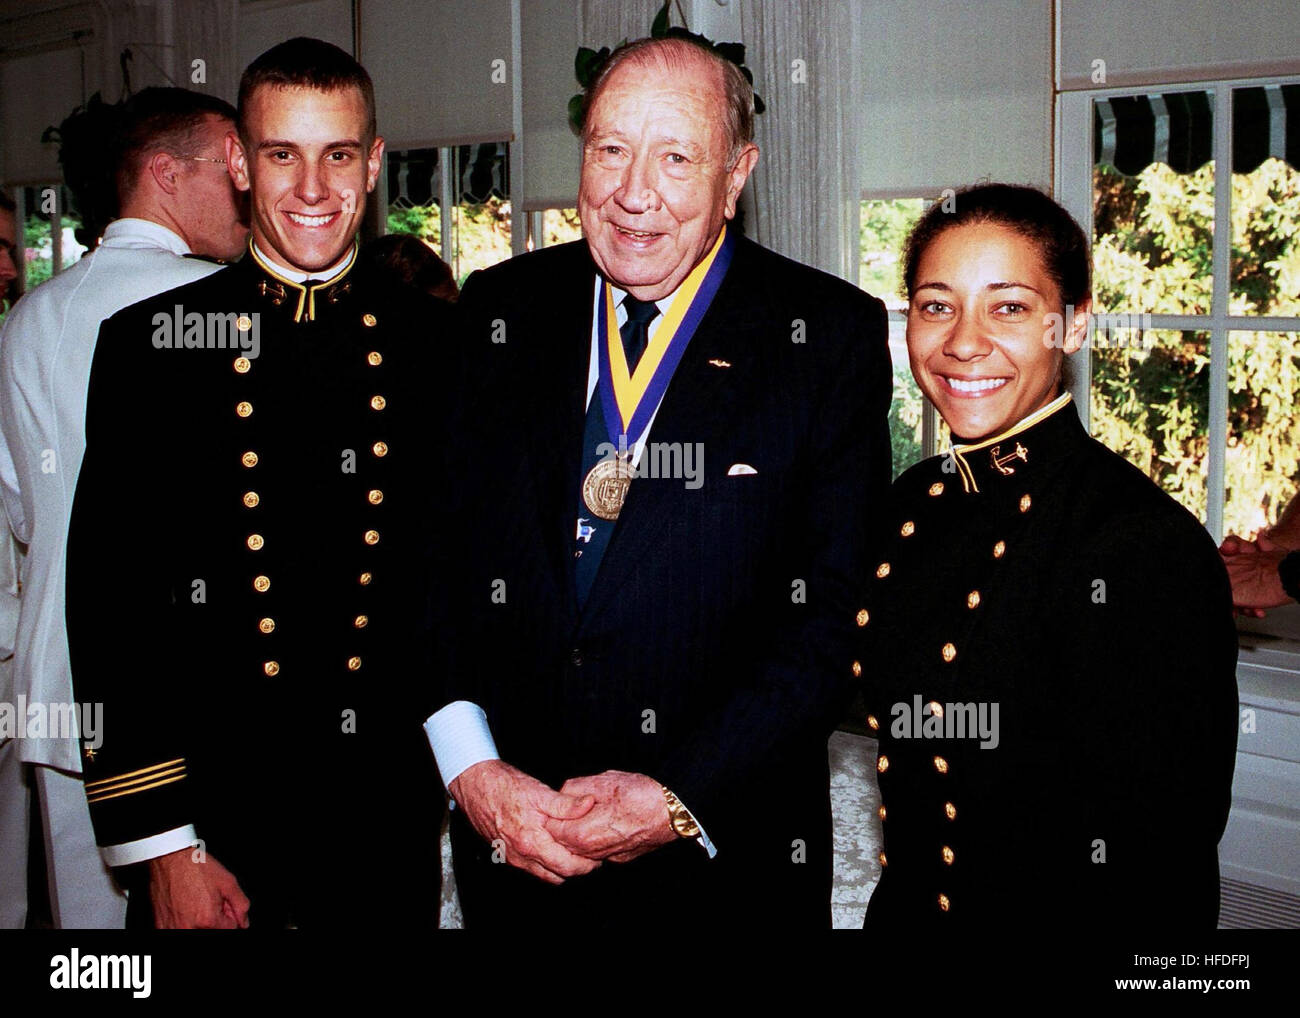 010921-N-5390M-003   ANNAPOLIS, Md.  (Sept. 21, 2001) - File photo, Former Chairman of the Joint Chiefs of Staff - Stock Image